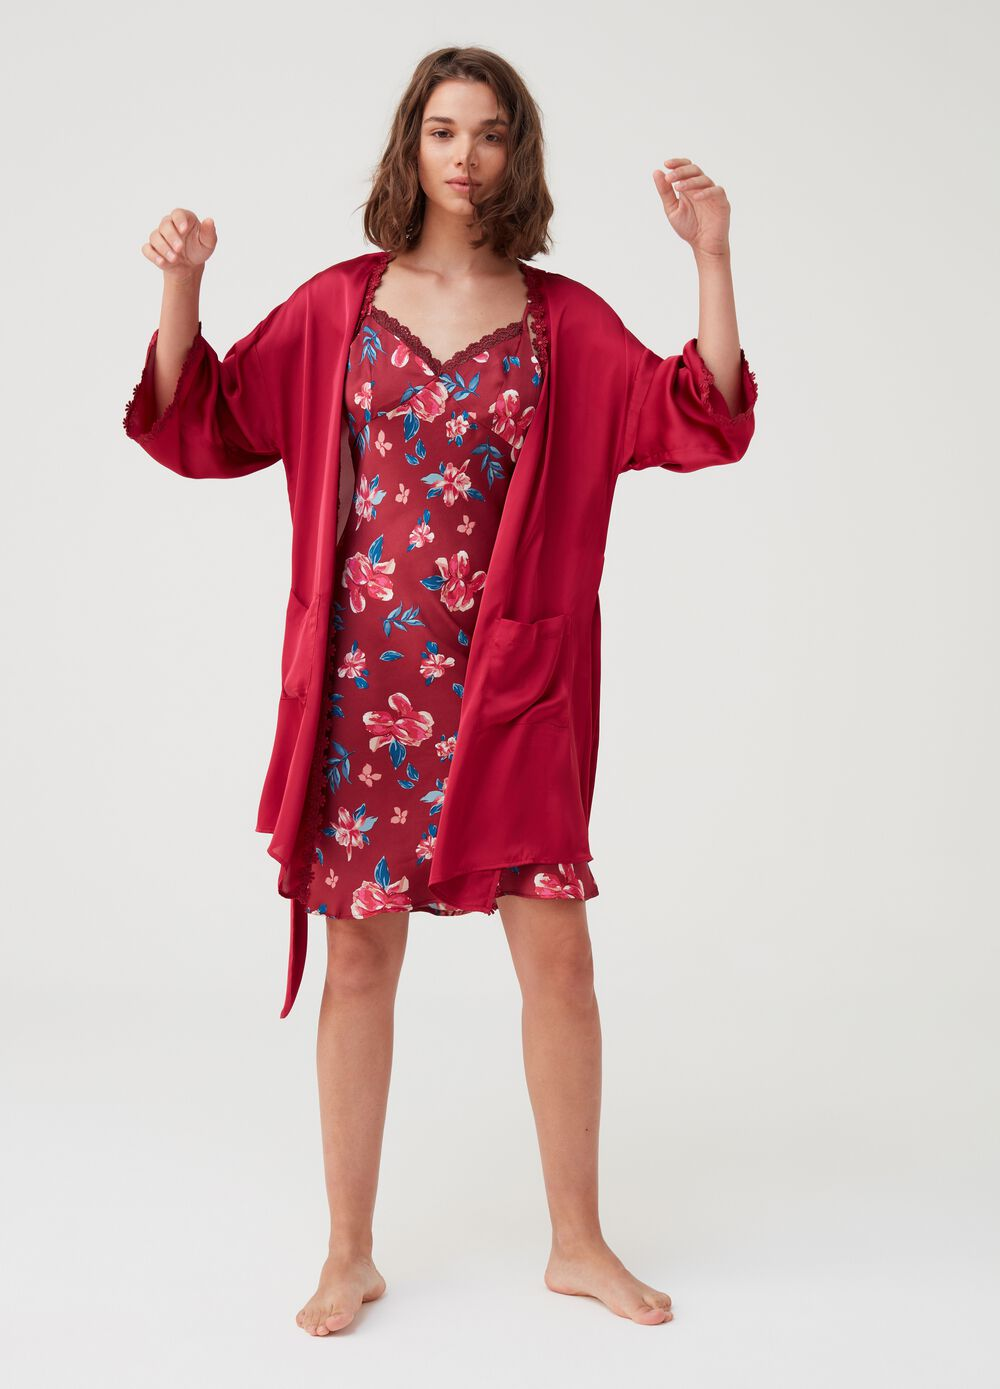 Kimono dressing gown with floral trim